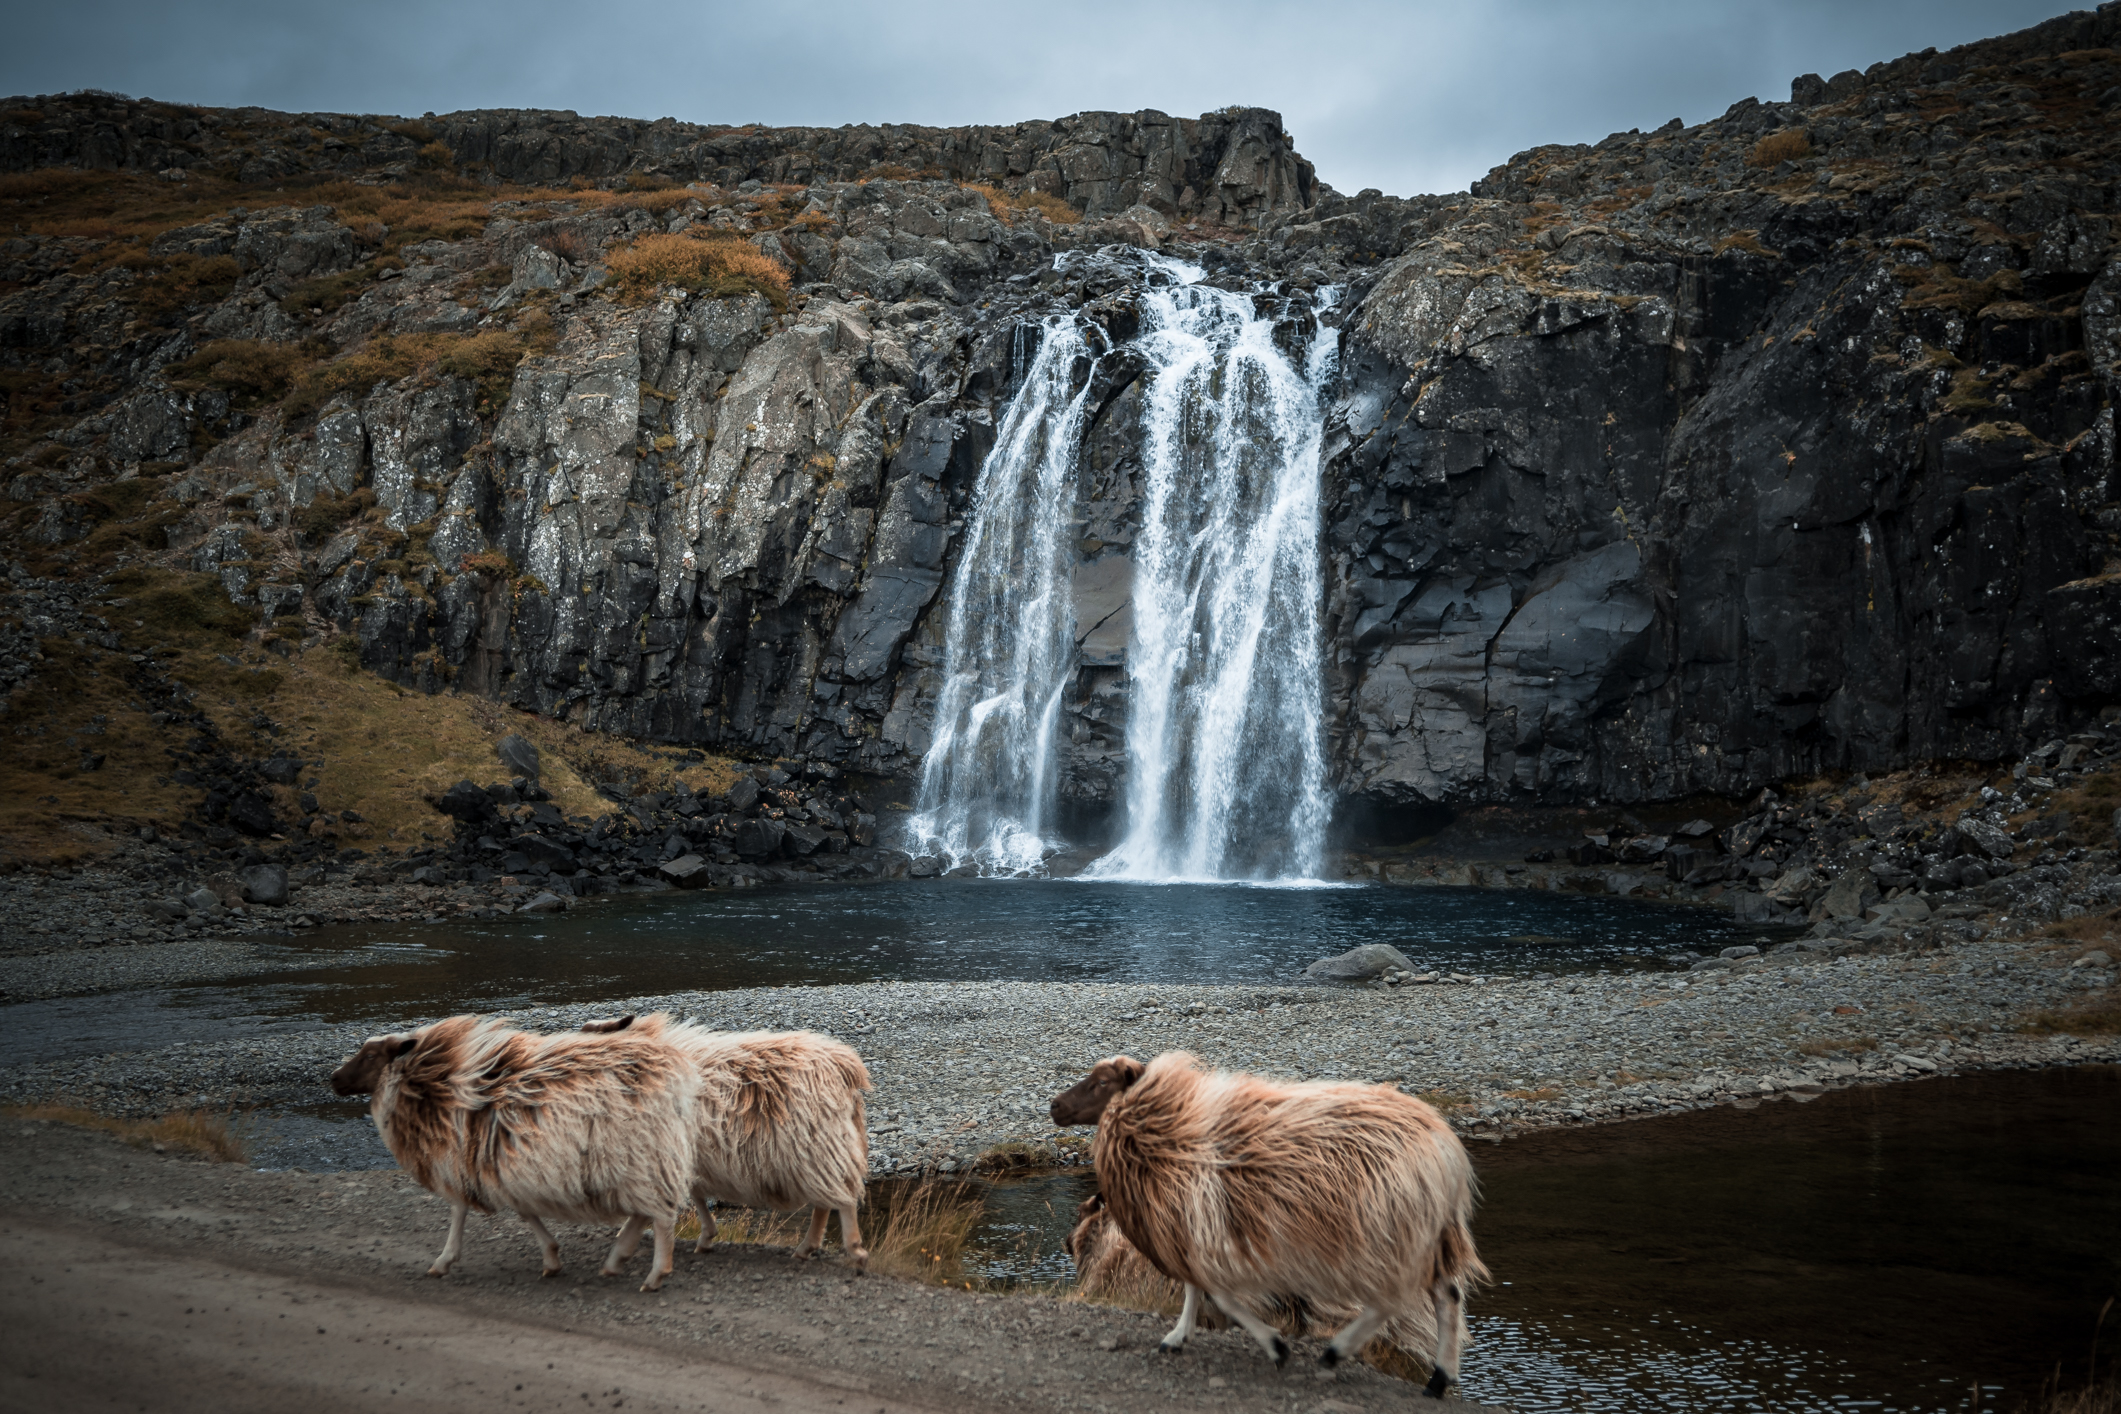 Another bunch of sheep, casually crossing the street in front of the Waterfall. Can it get more Icelandic then this?